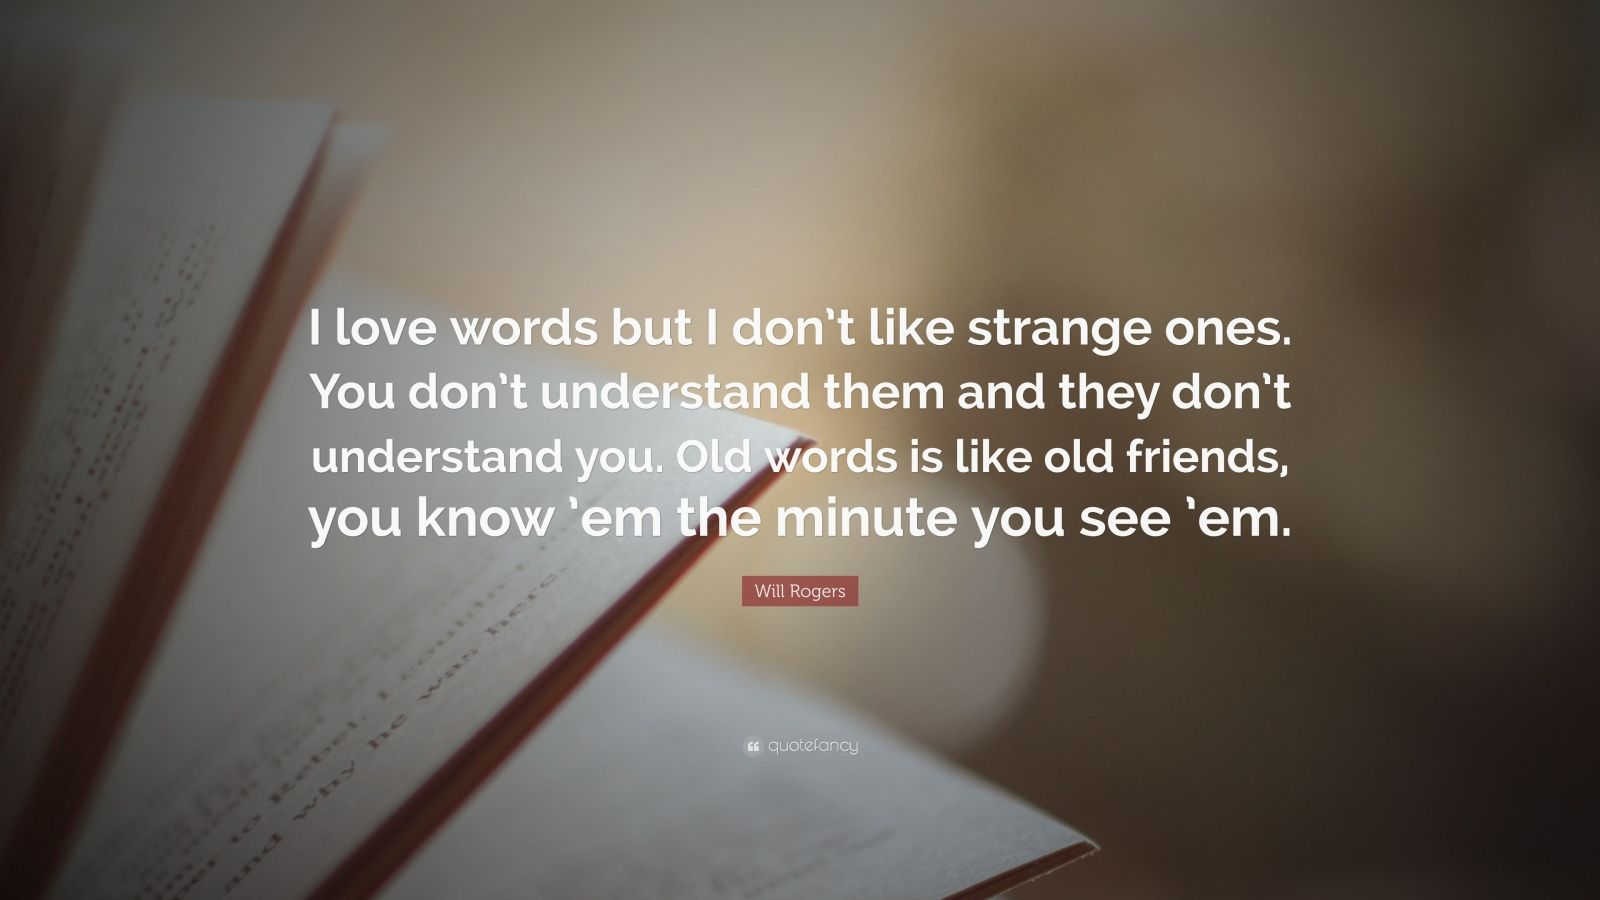 """Will Rogers Quote: """"I love words but I don't like strange ones. You don't understand them and they don't understand you. Old words is like old friends, you know 'em the minute you see 'em."""""""